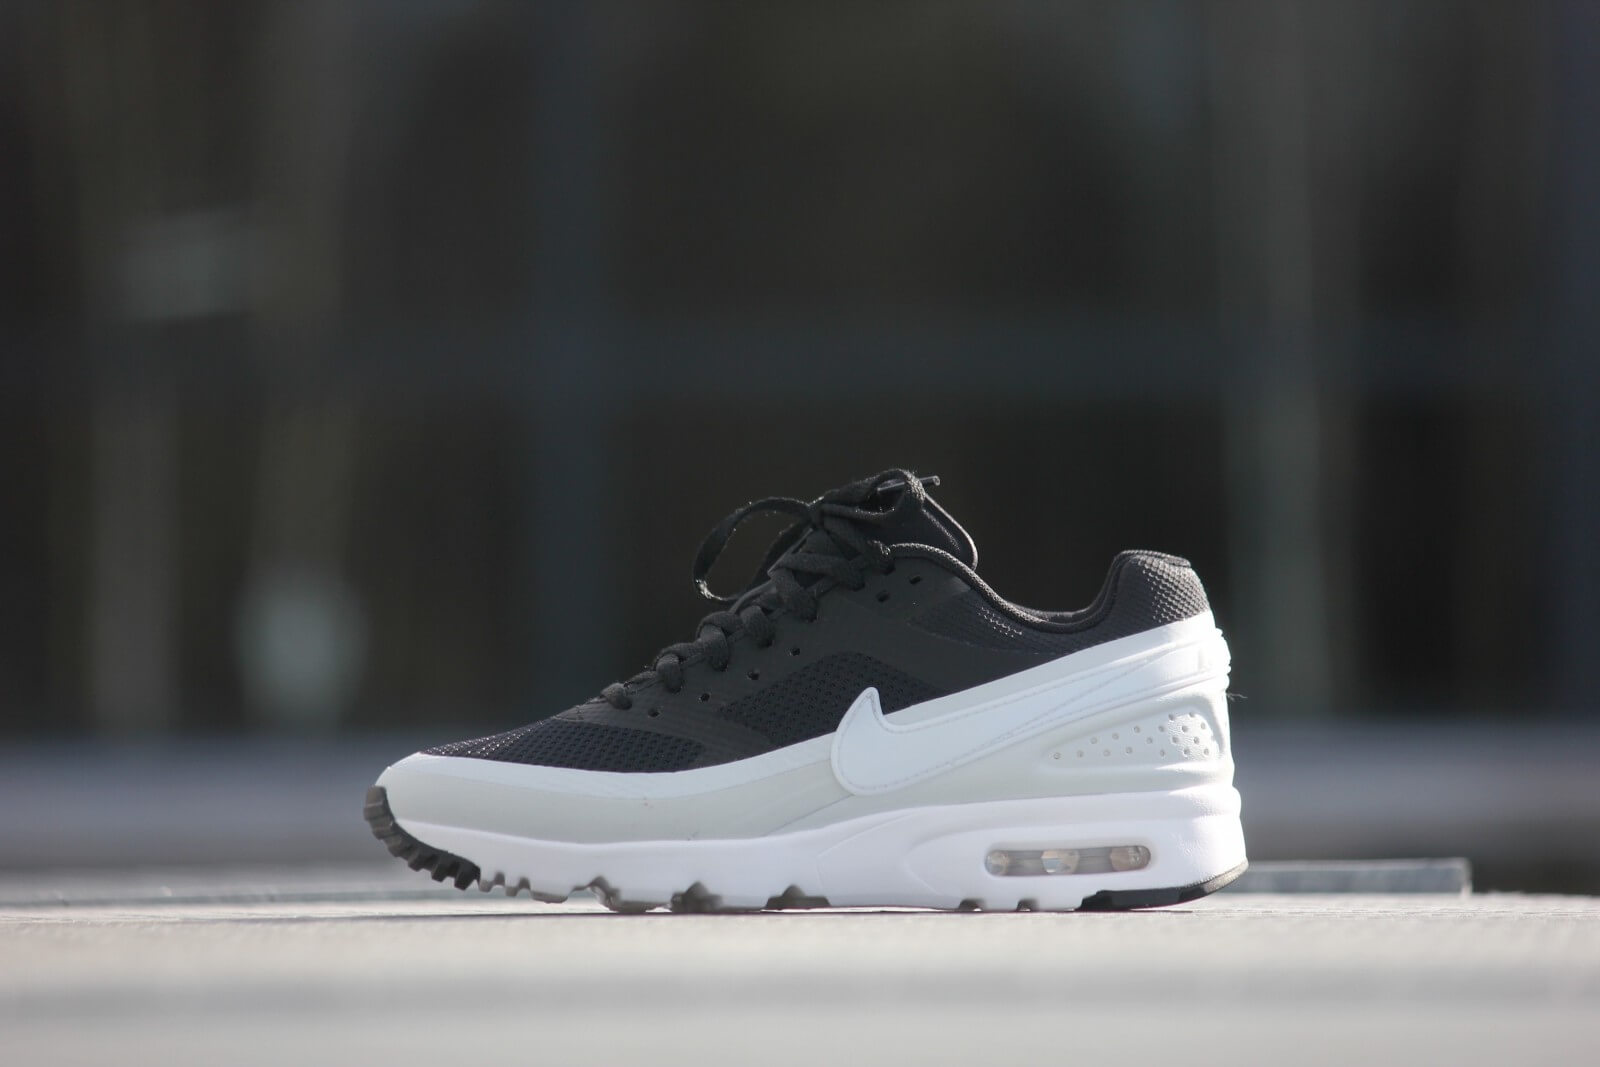 Nike WMNS Air Max BW Ultra Black Pure Platinum 819638 001